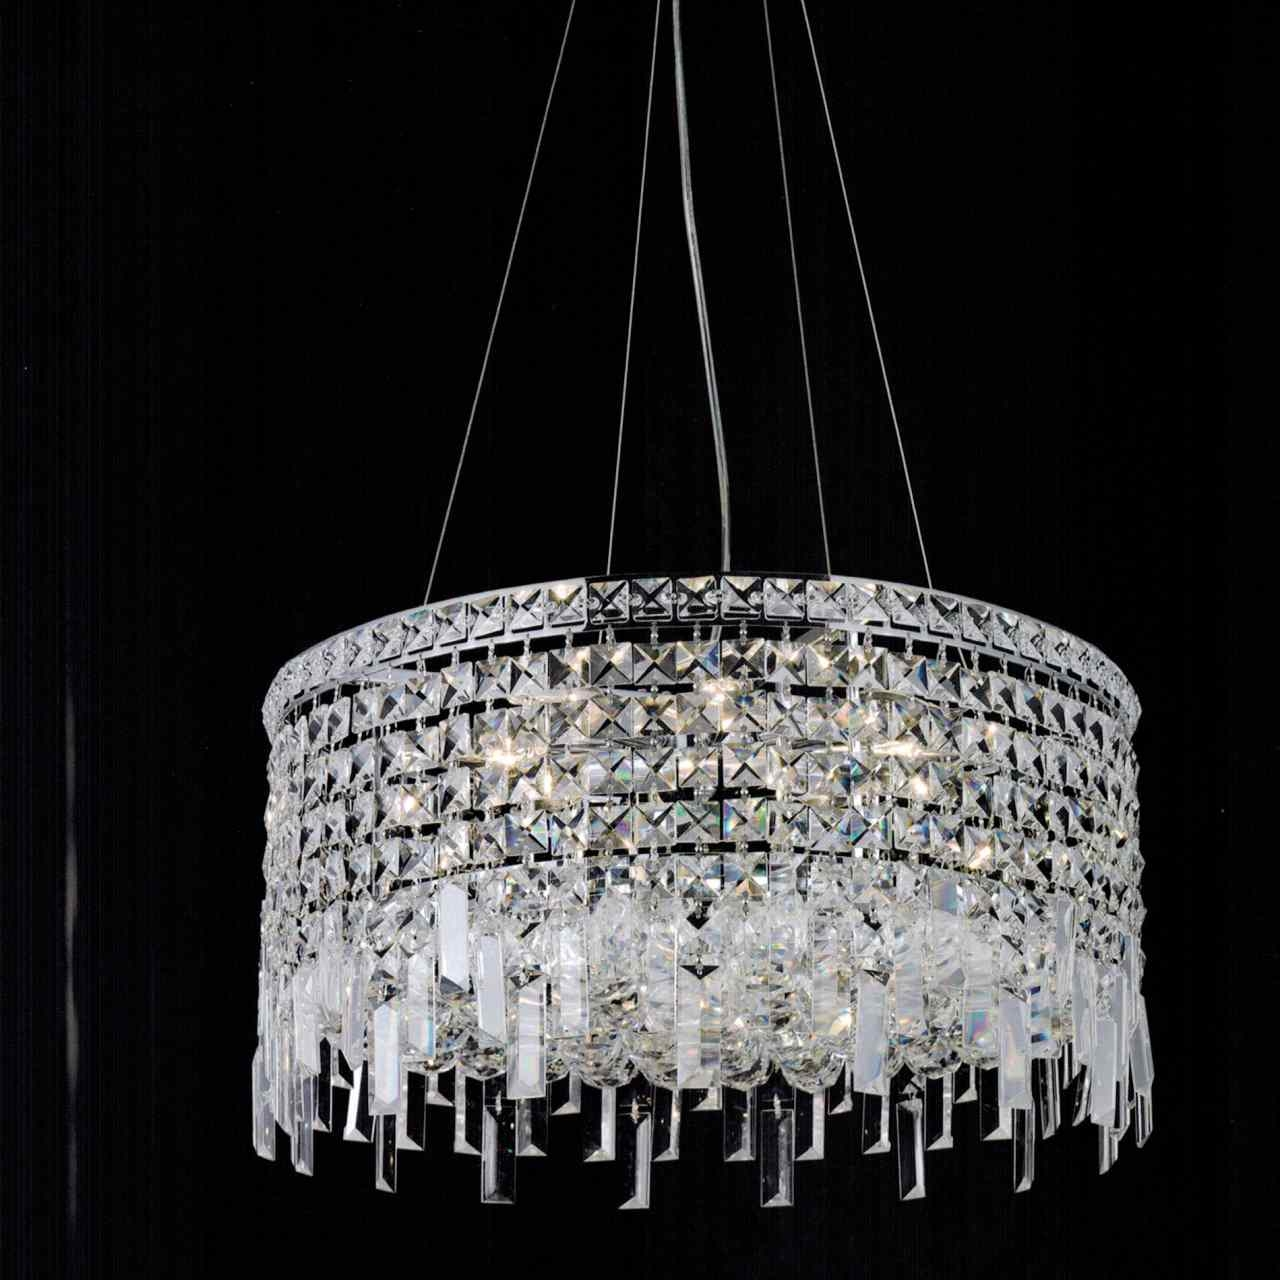 Brizzo Lighting Stores 16 Bossolo Transitional Crystal Round Pertaining To Crystal Chrome Chandeliers (Image 5 of 25)